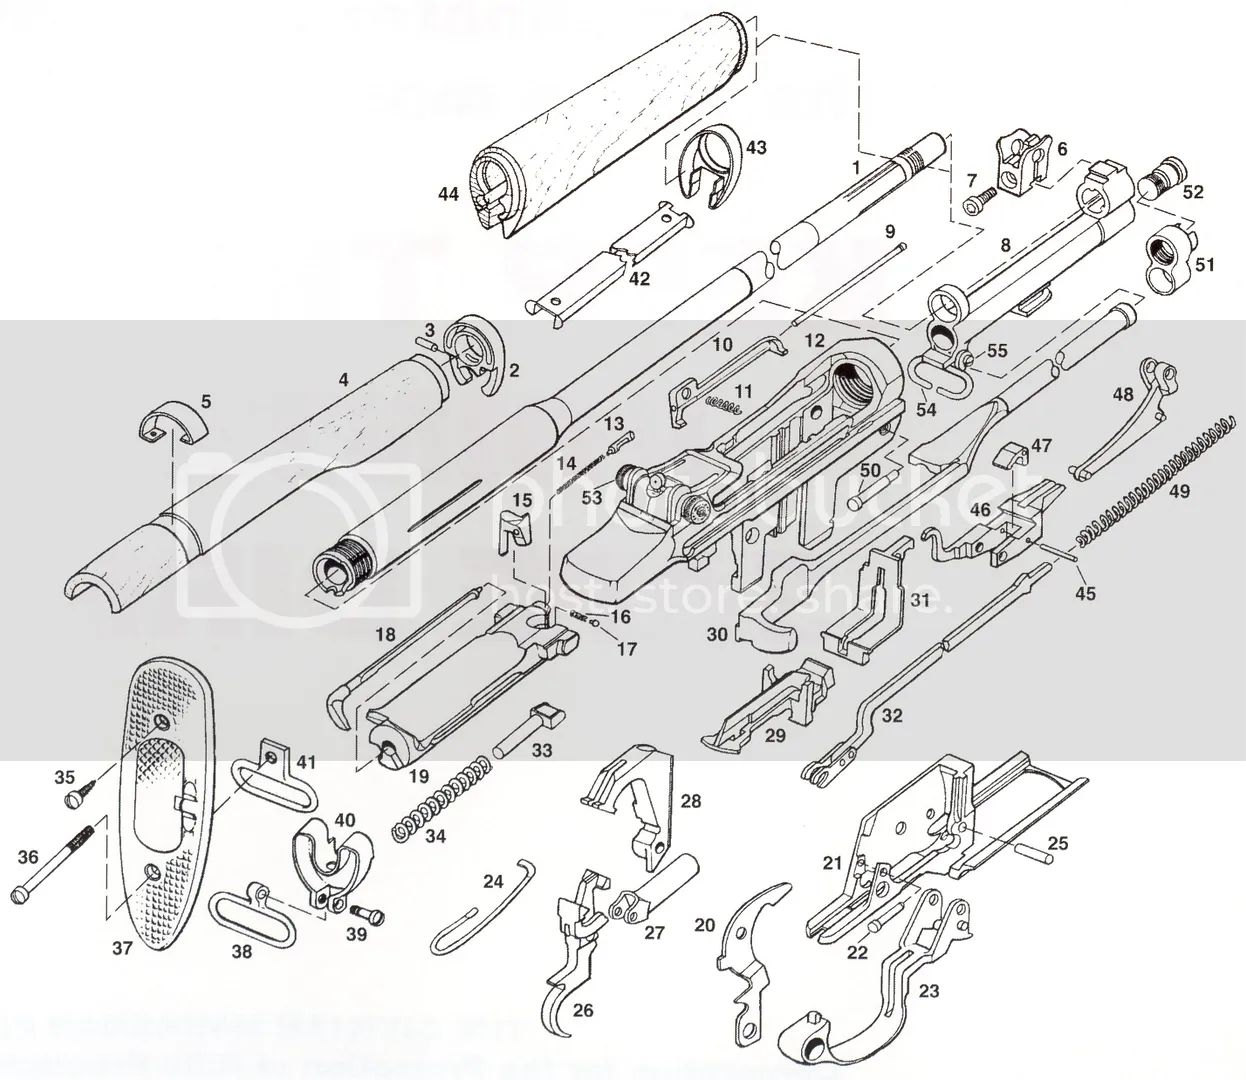 Sniper Diagram Auto Electrical Wiring Fotos 1911 A1 Parts Http Www Bevfitchett Us Ruger P Series M1a Car